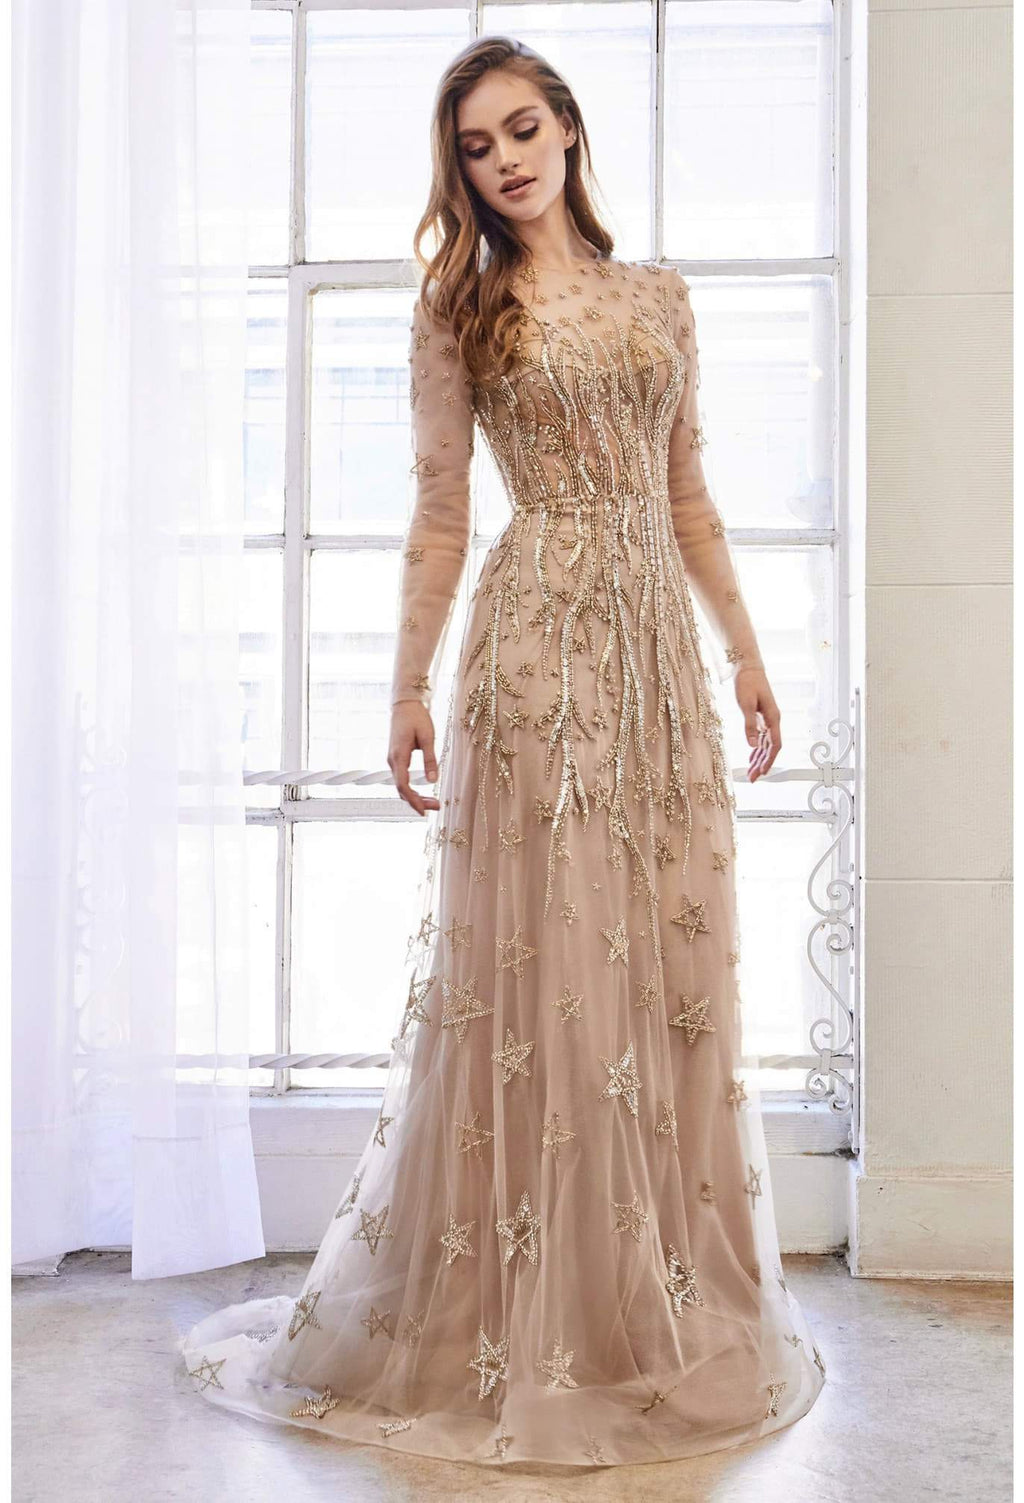 ESTELLE GOWN LONG SLEEVE FULLY BEADED CONSTELLATION A-LINE GOWN